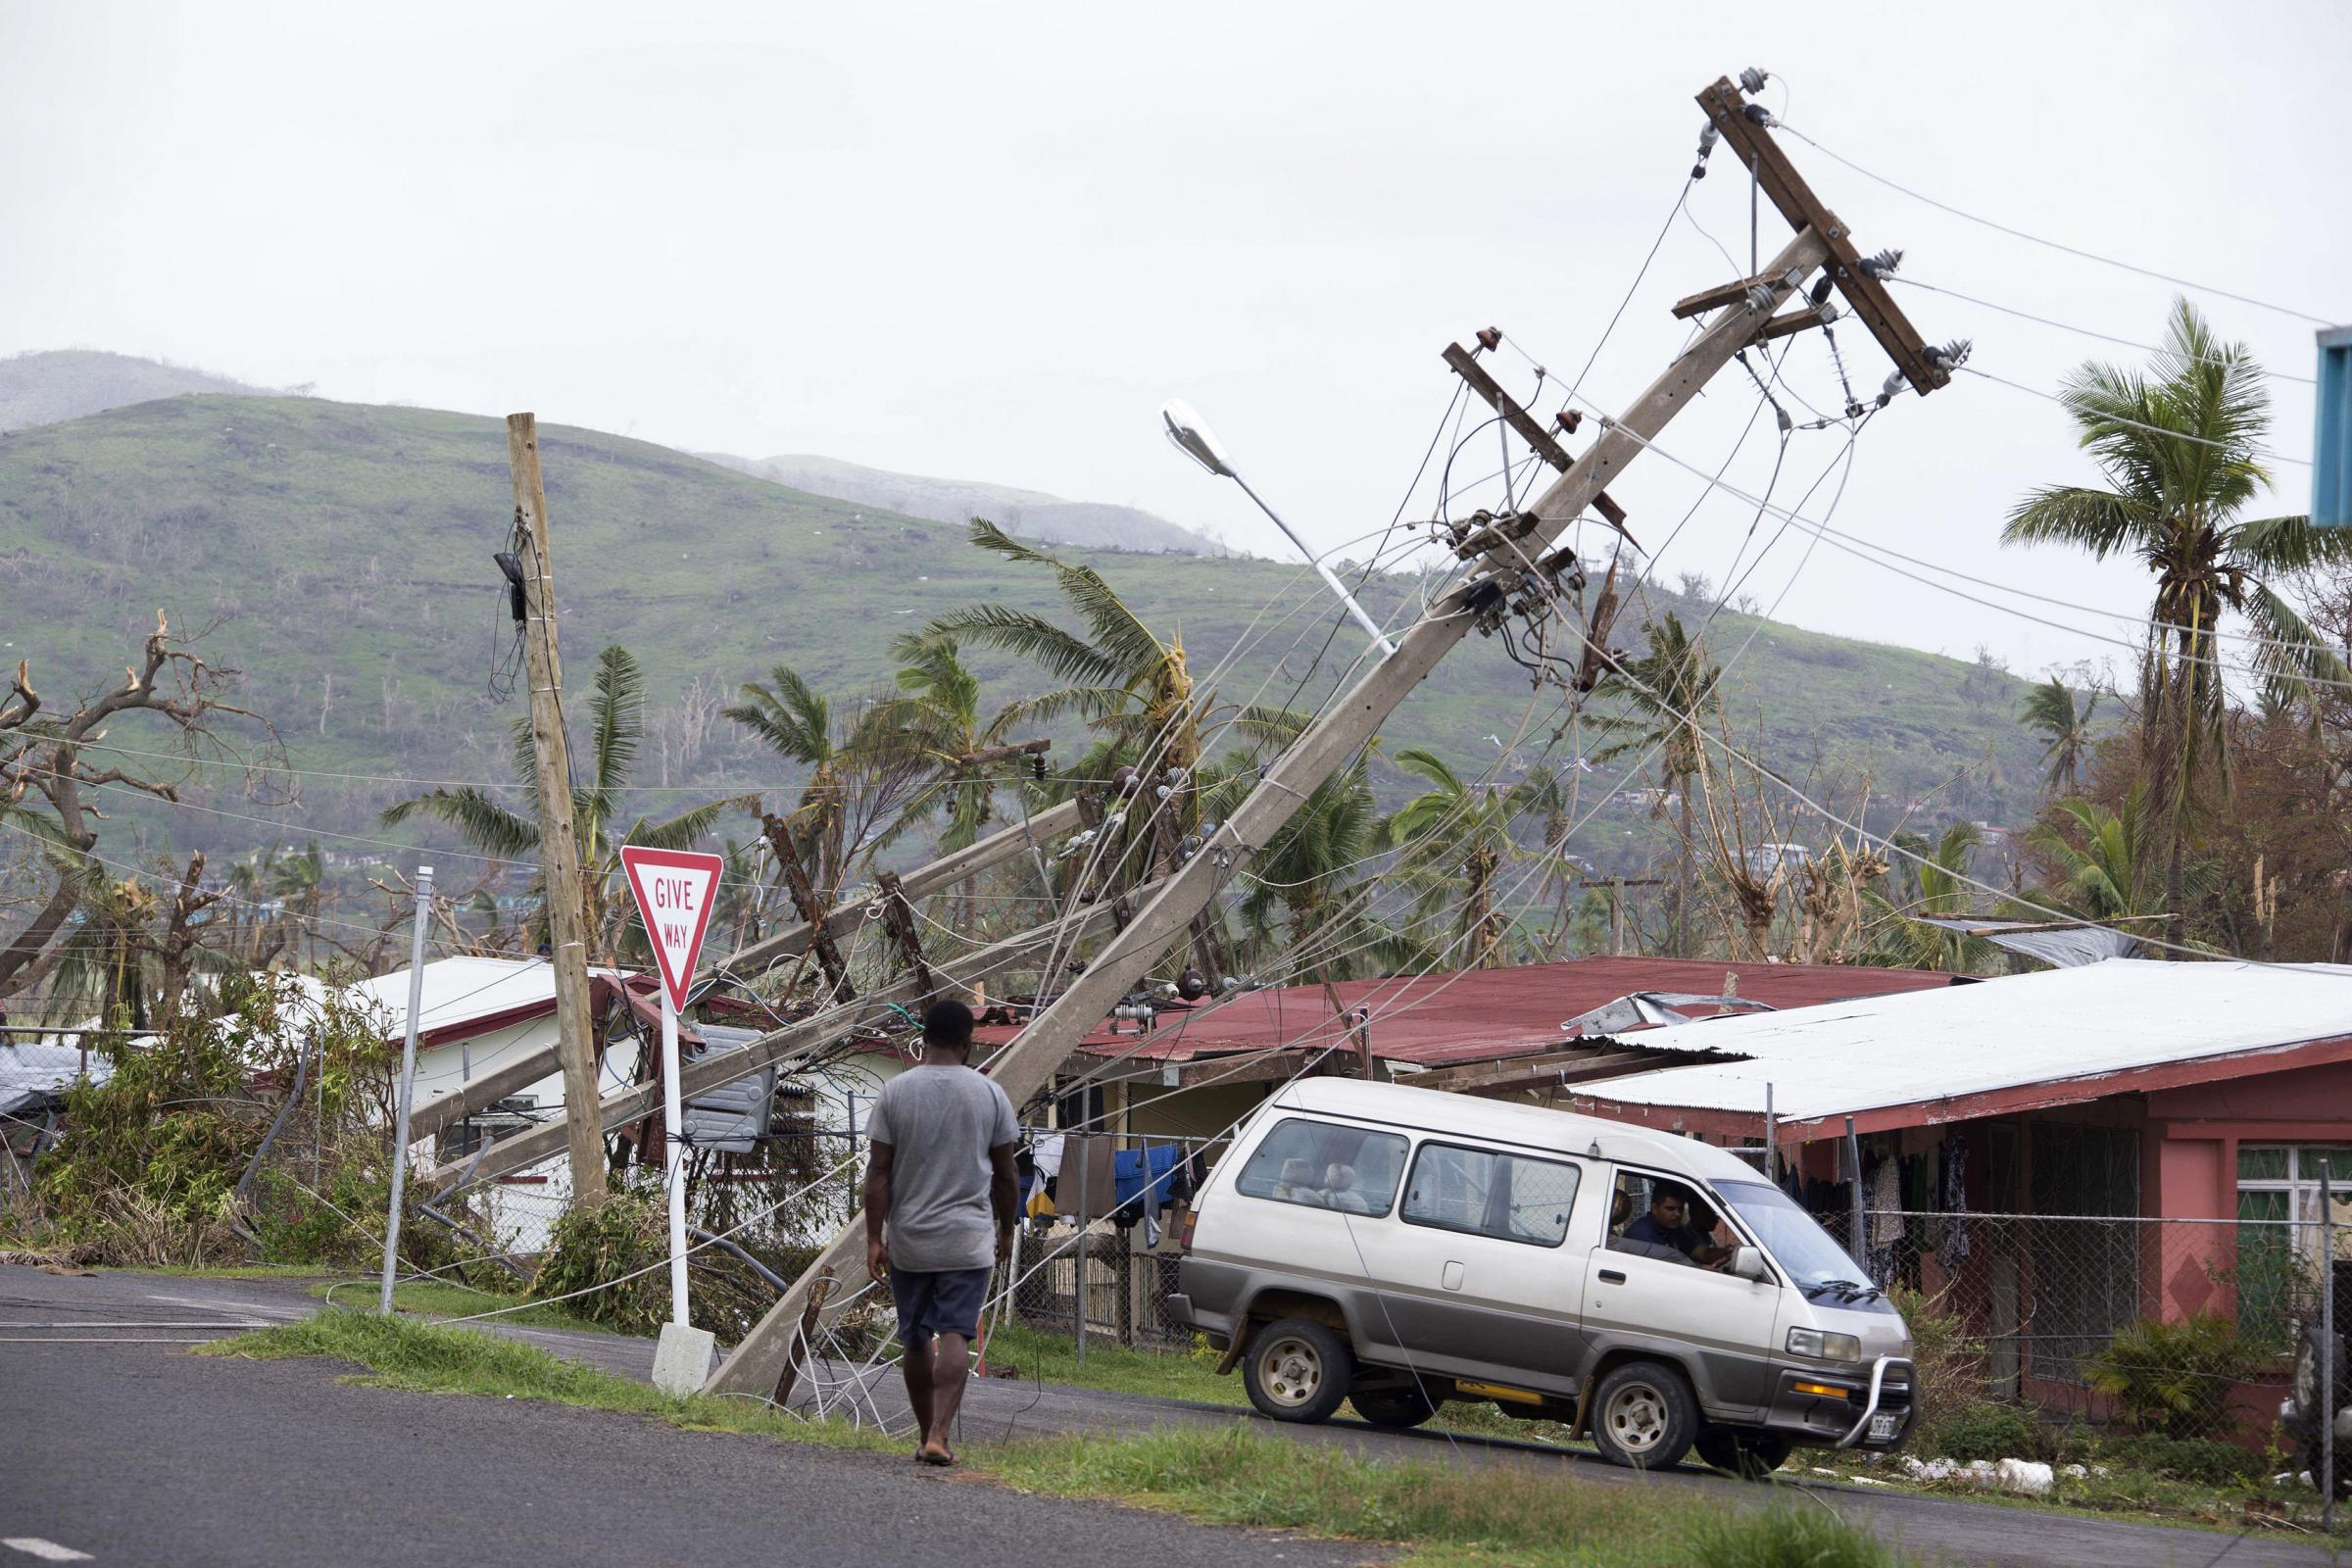 Cyclone Winston devastated Fiji in 2016